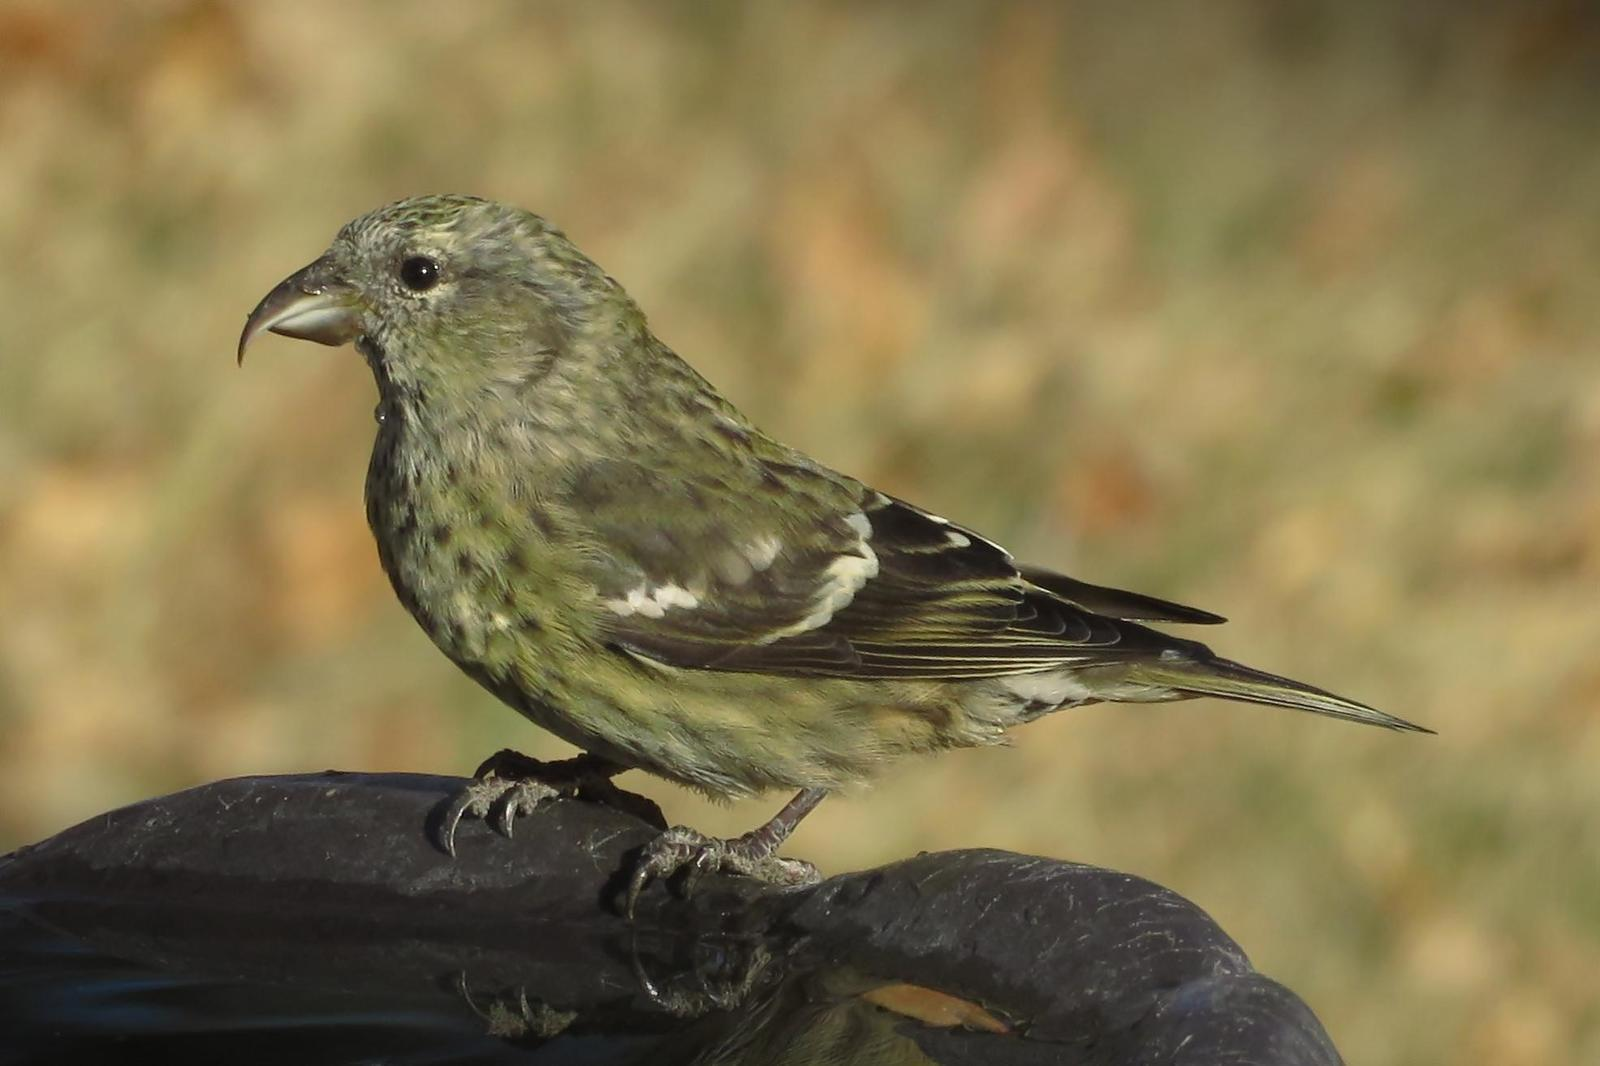 White-winged Crossbill Photo by Bob Neugebauer